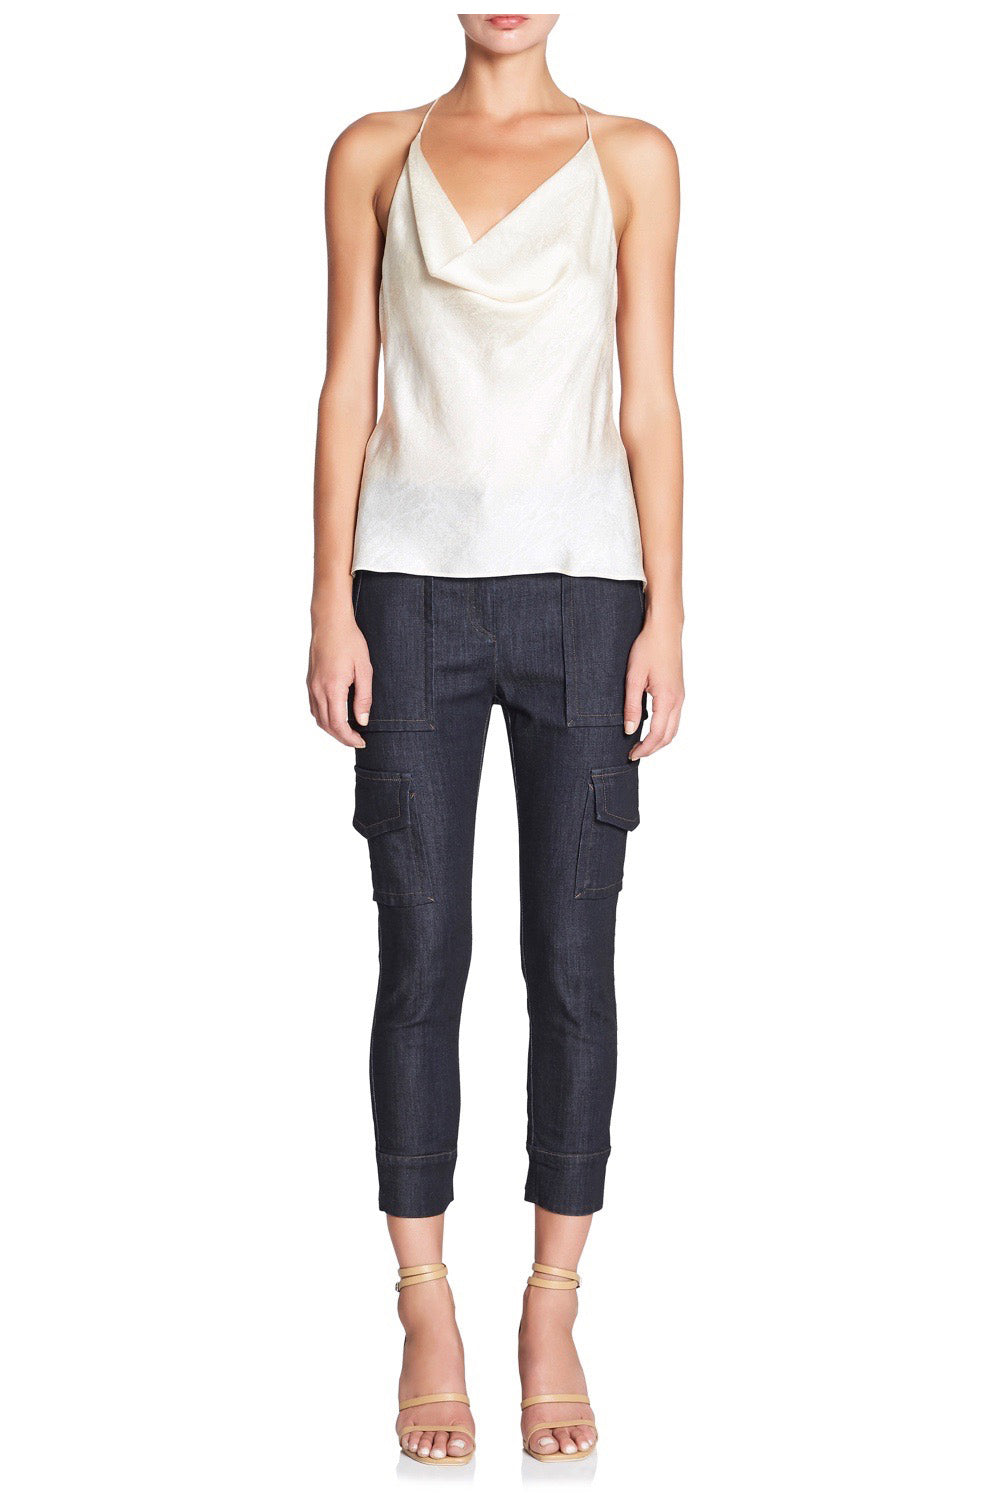 SUPERCUT CROP PANT